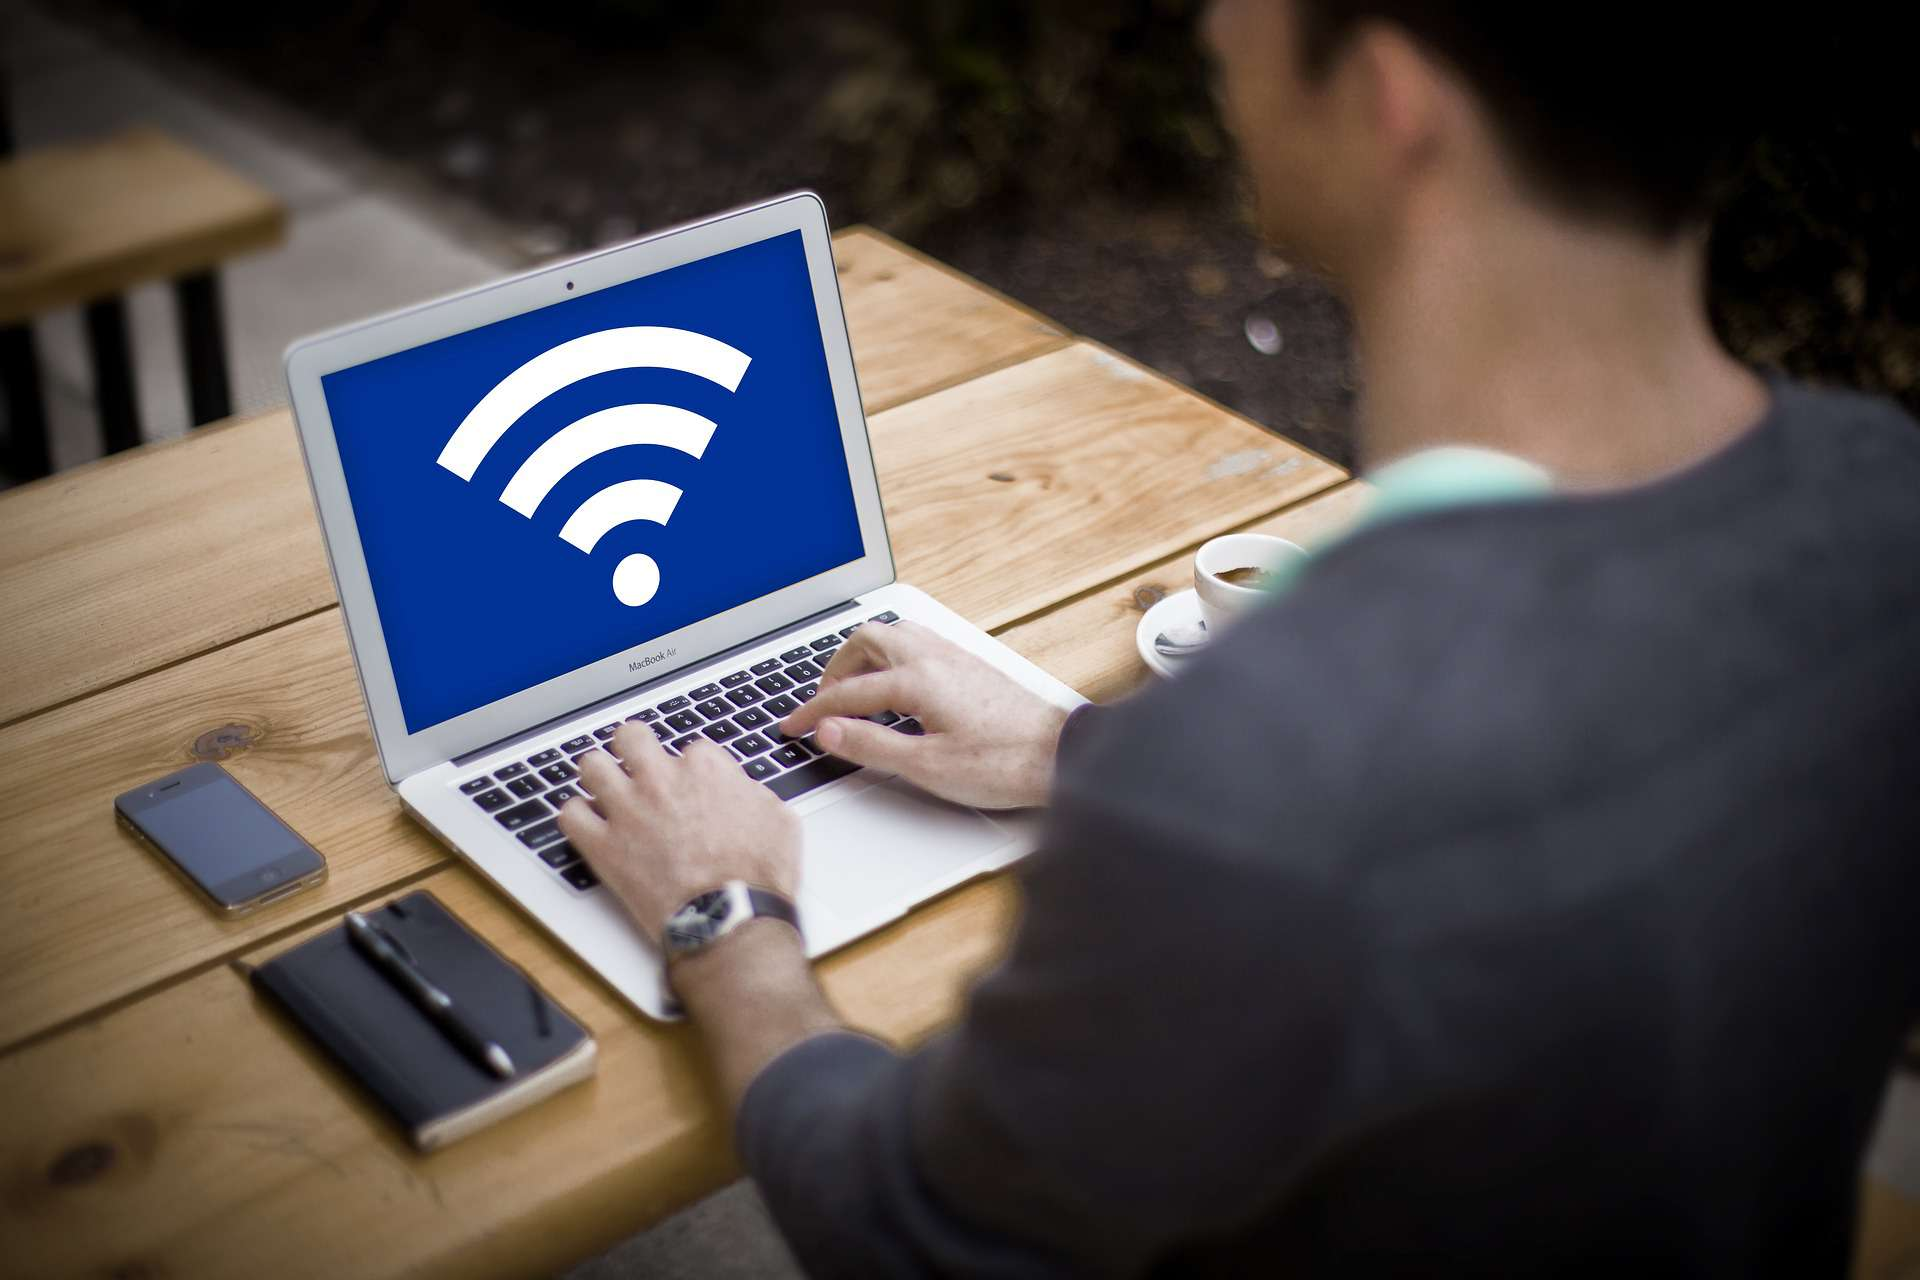 What To Do When Your Wi Fi Network Is Not Showing Up